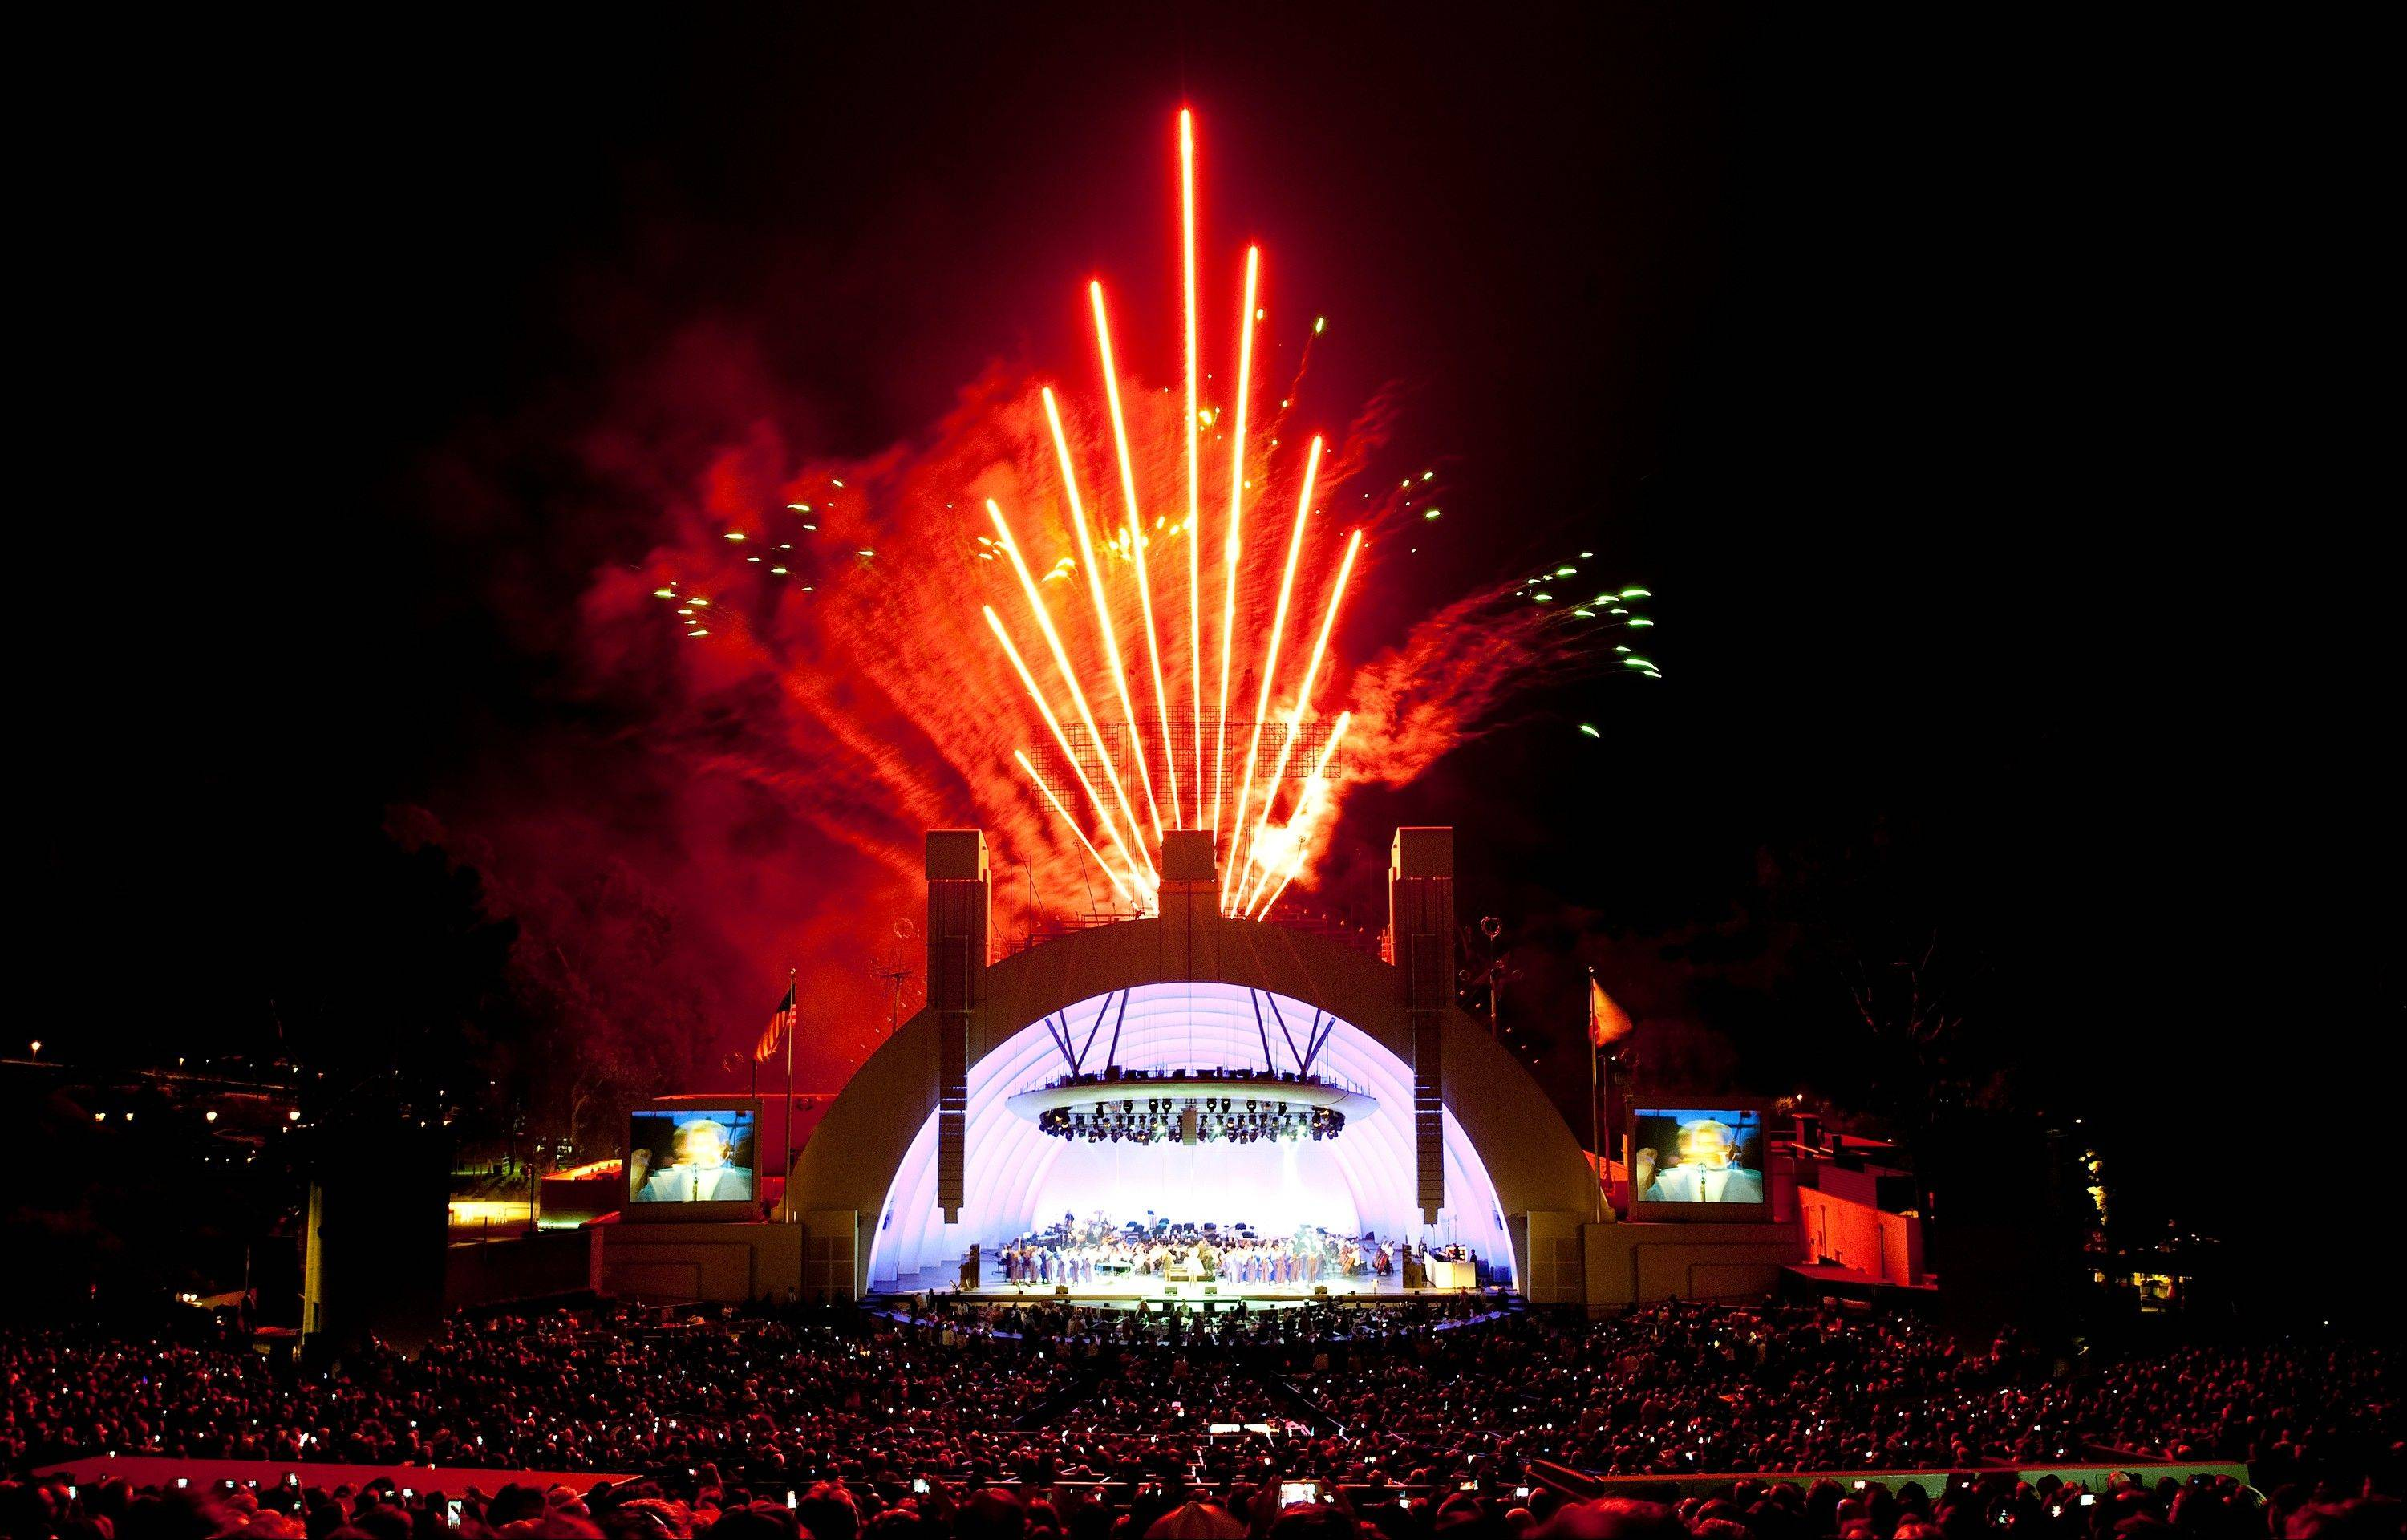 Fireworks explode over the Hollywood Bowl on July 3, 2012 in Los Angeles. The Hollywood Bowl puts on more than a dozen shows using pyrotechnics throughout the year.